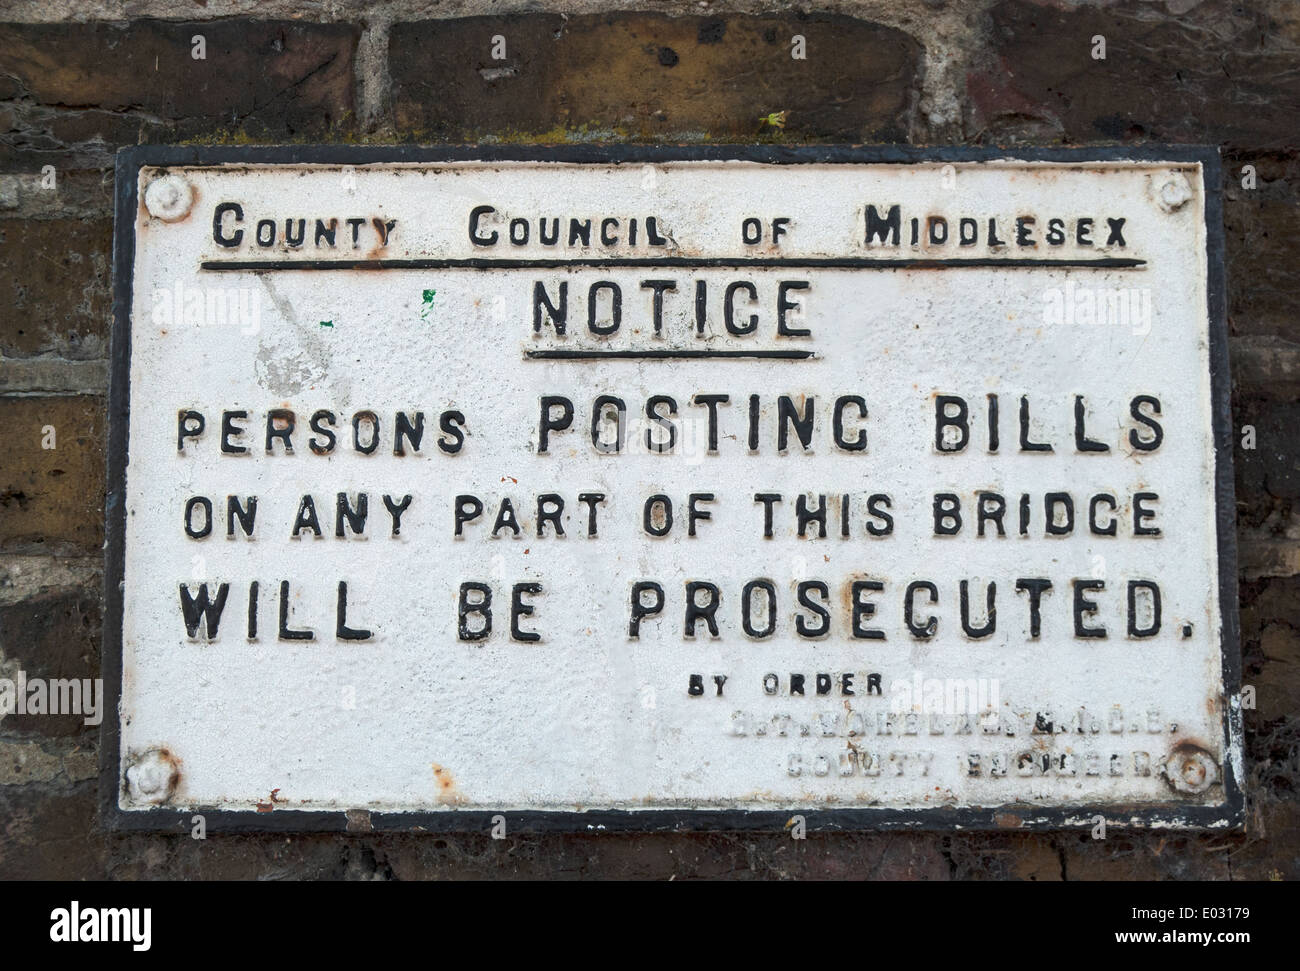 vintage middlesex county council sign warning that anyone posting bills on bridge will be prosecuted - Stock Image